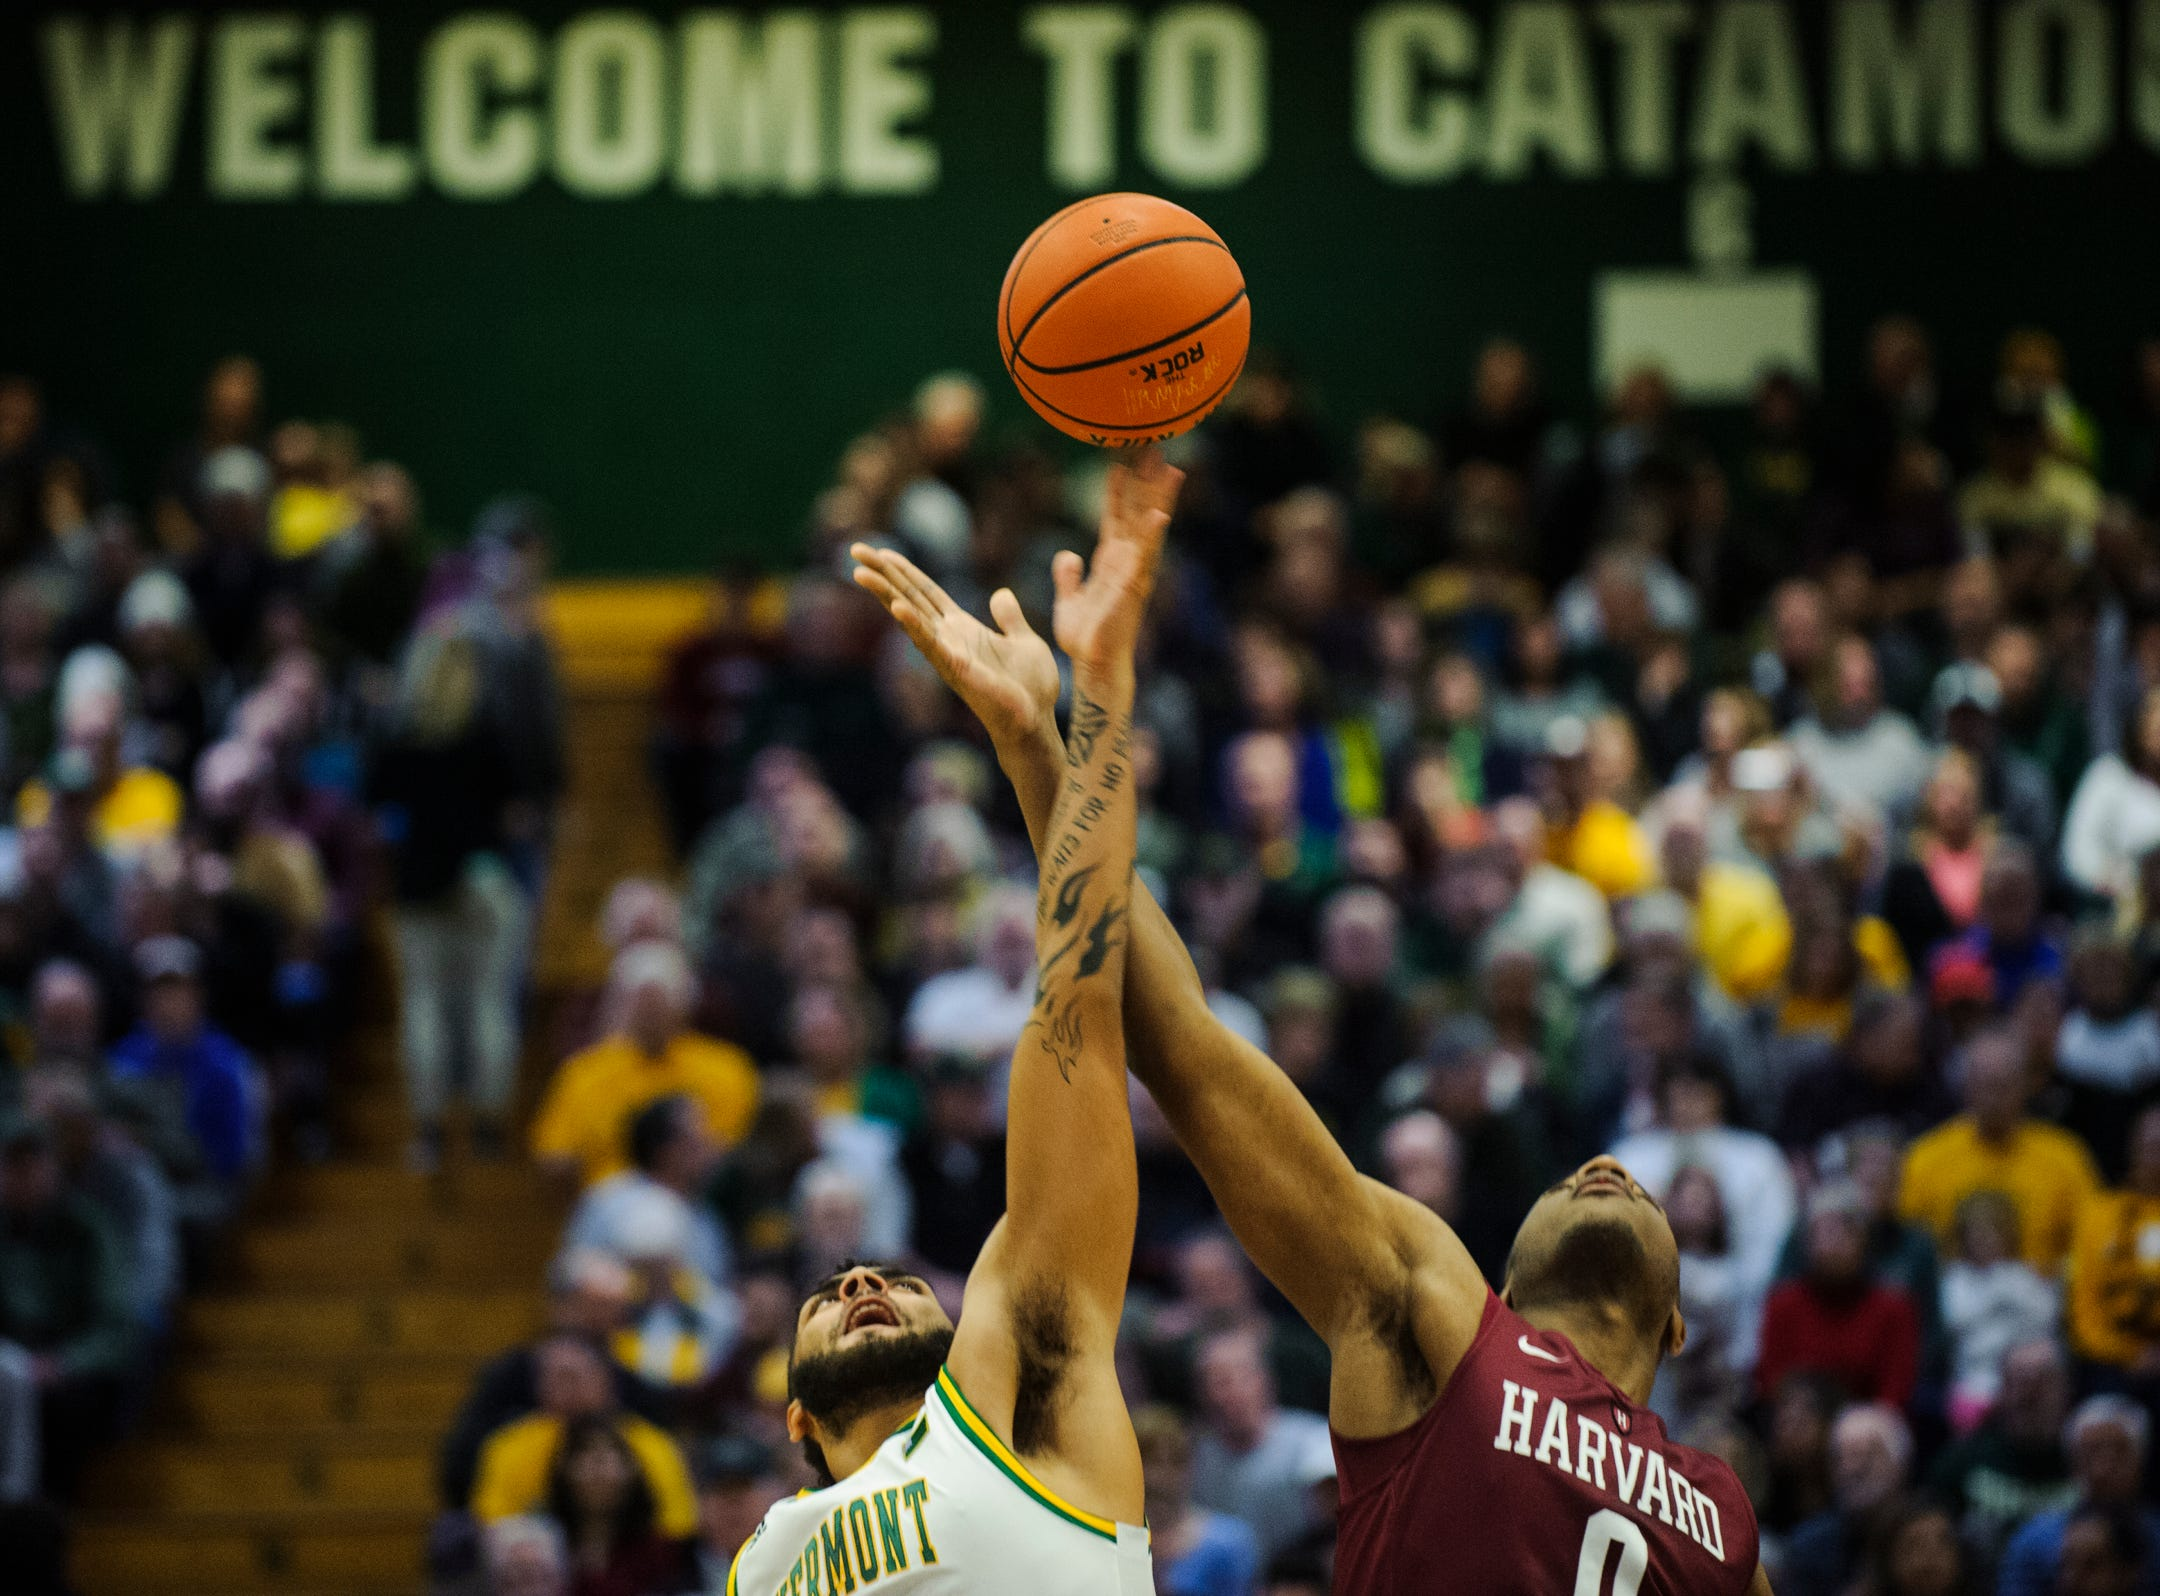 Vermont forward Anthony Lamb (3) and Harvard's Chris Lewis (0) battle for the opening tip off during the men's basketball between the Harvard Crimson and the Vermont Catamounts at Patrick Gym on Saturday night December 8, 2018 in Burlington.